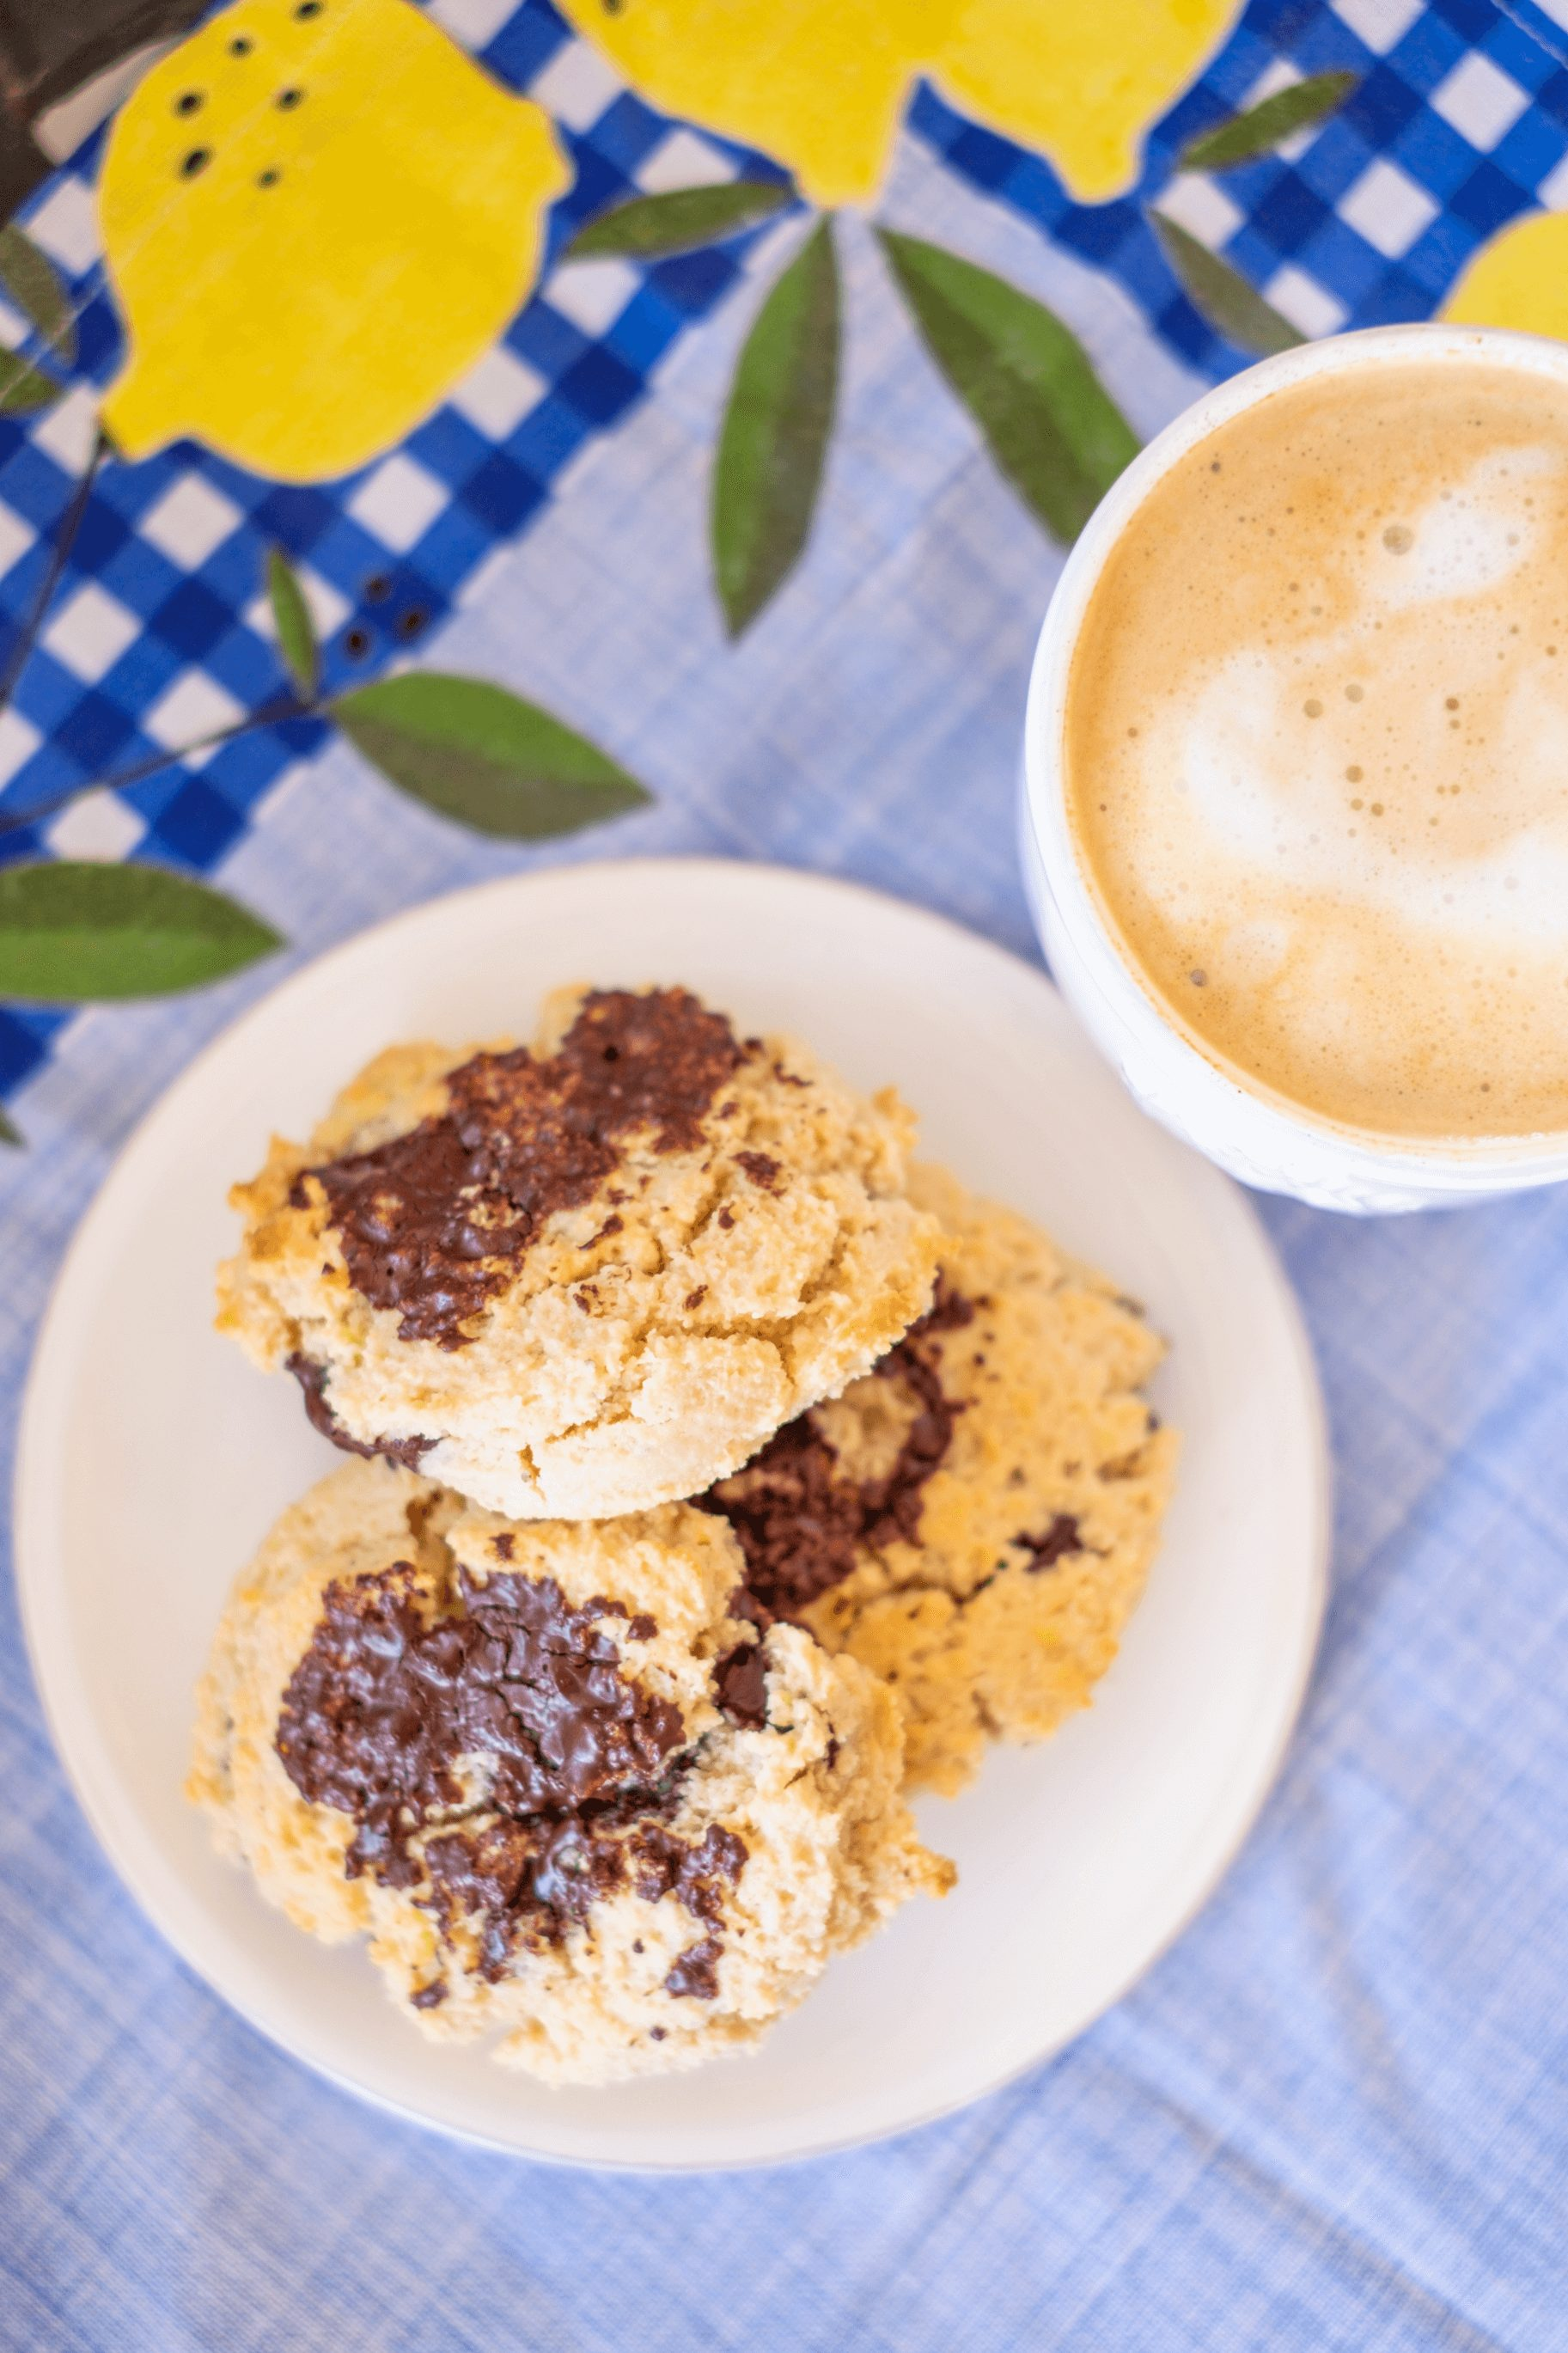 Paleo Chocolate Chip Cookies #whatsavvysaid #glutenfree #dairyfree #refinedsugarfree